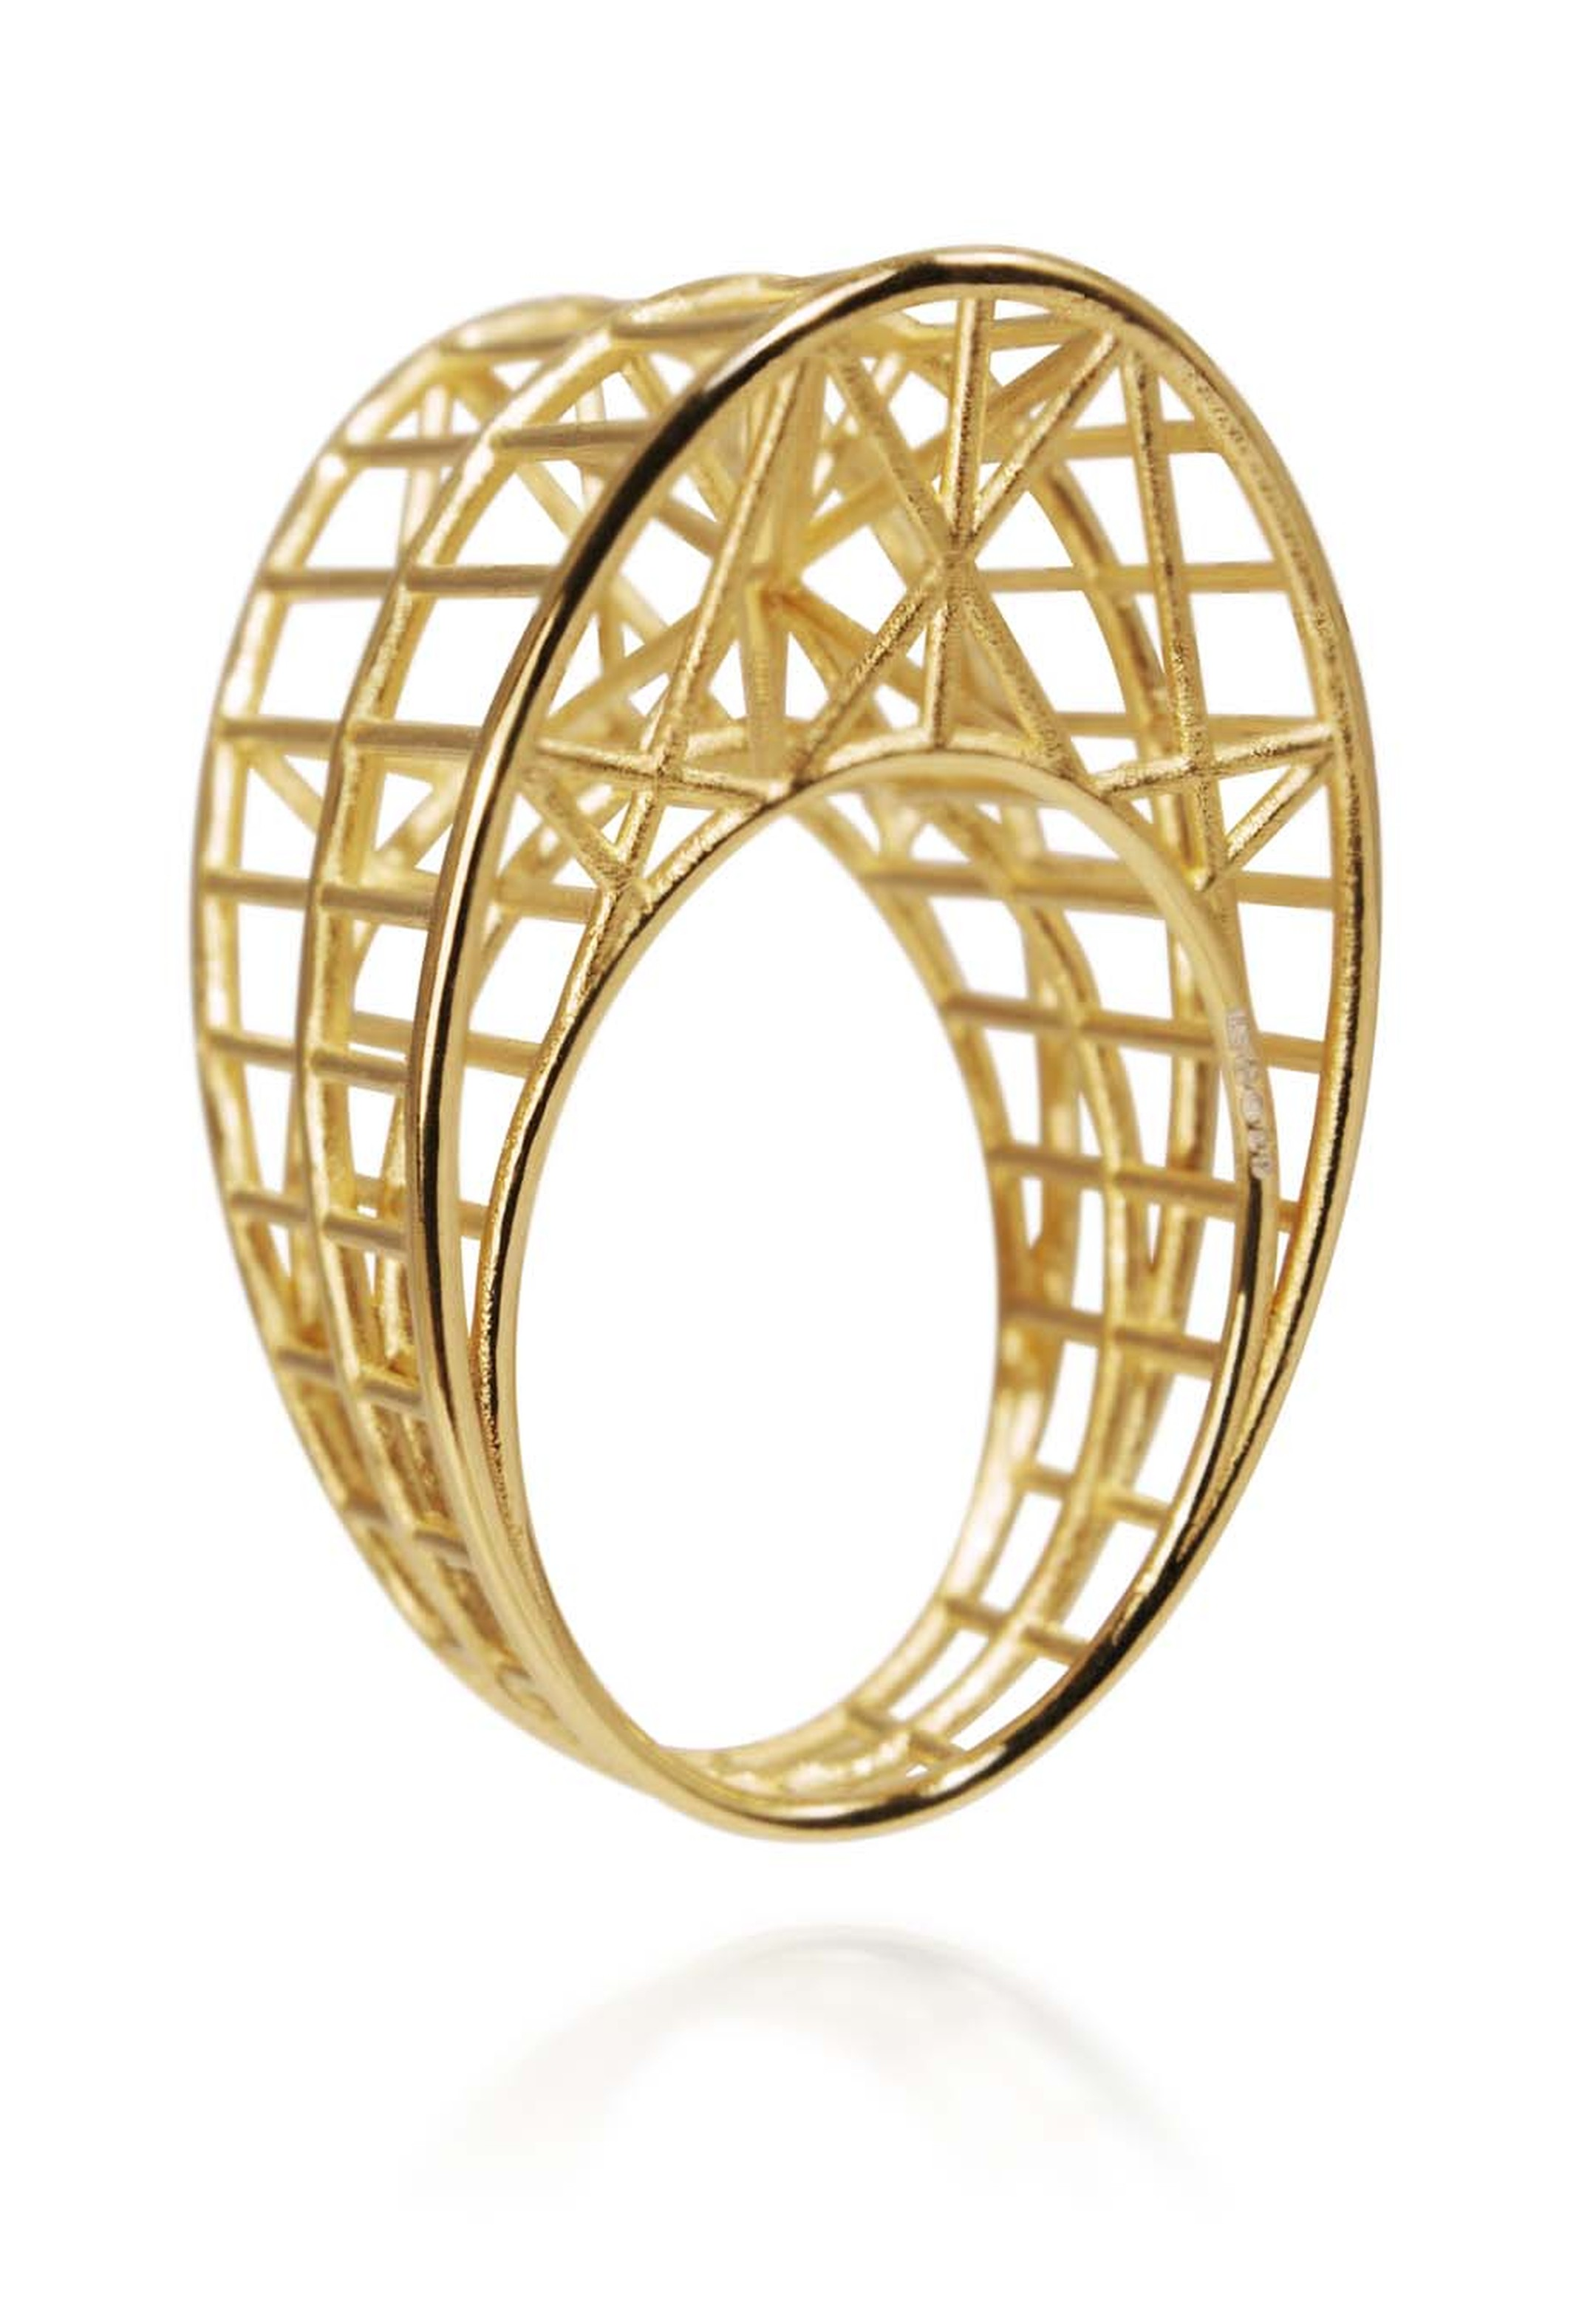 Jennifer Saker Draper gold ring.